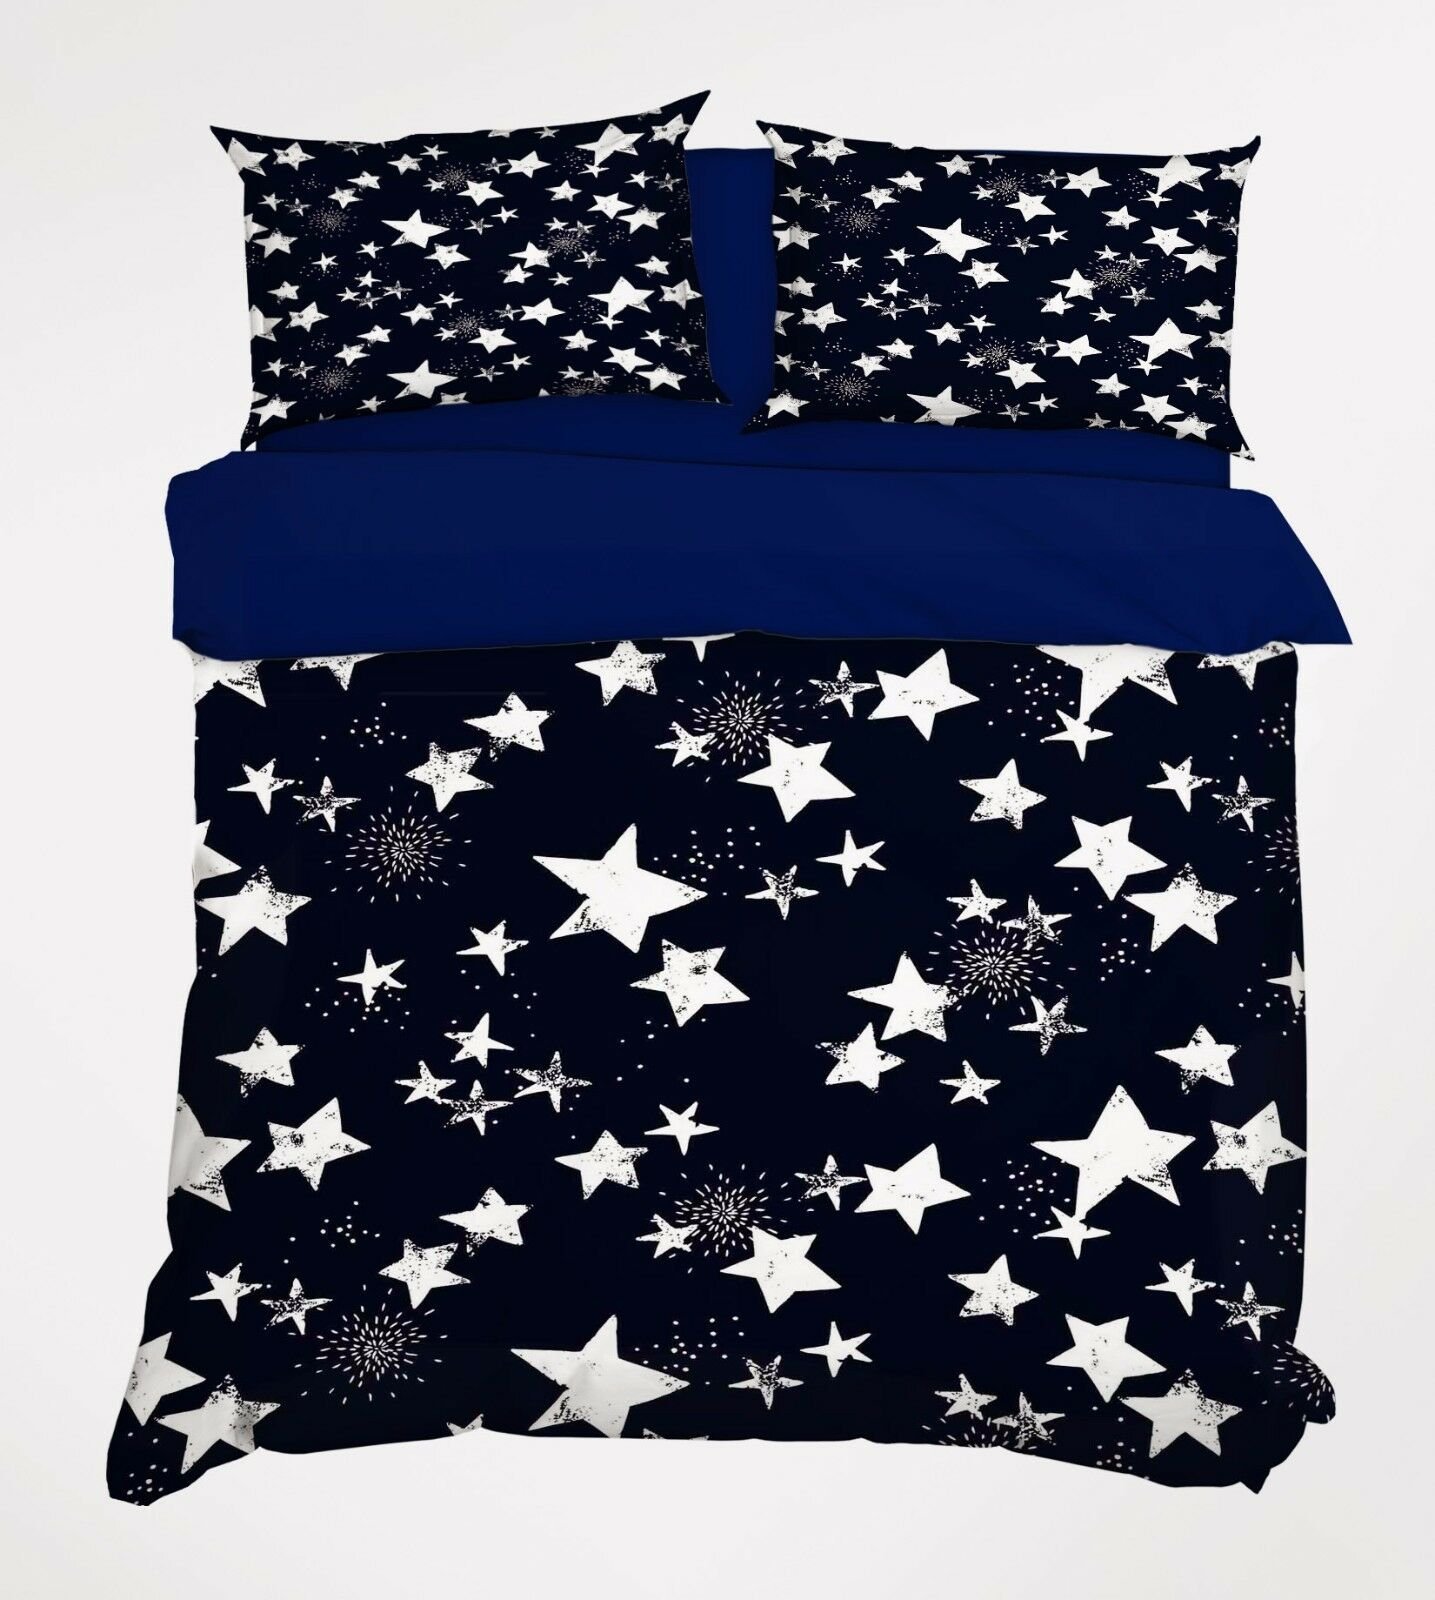 3D White Stars 806 Bed Pillowcases Quilt Duvet Cover Set Single Queen UK Summer